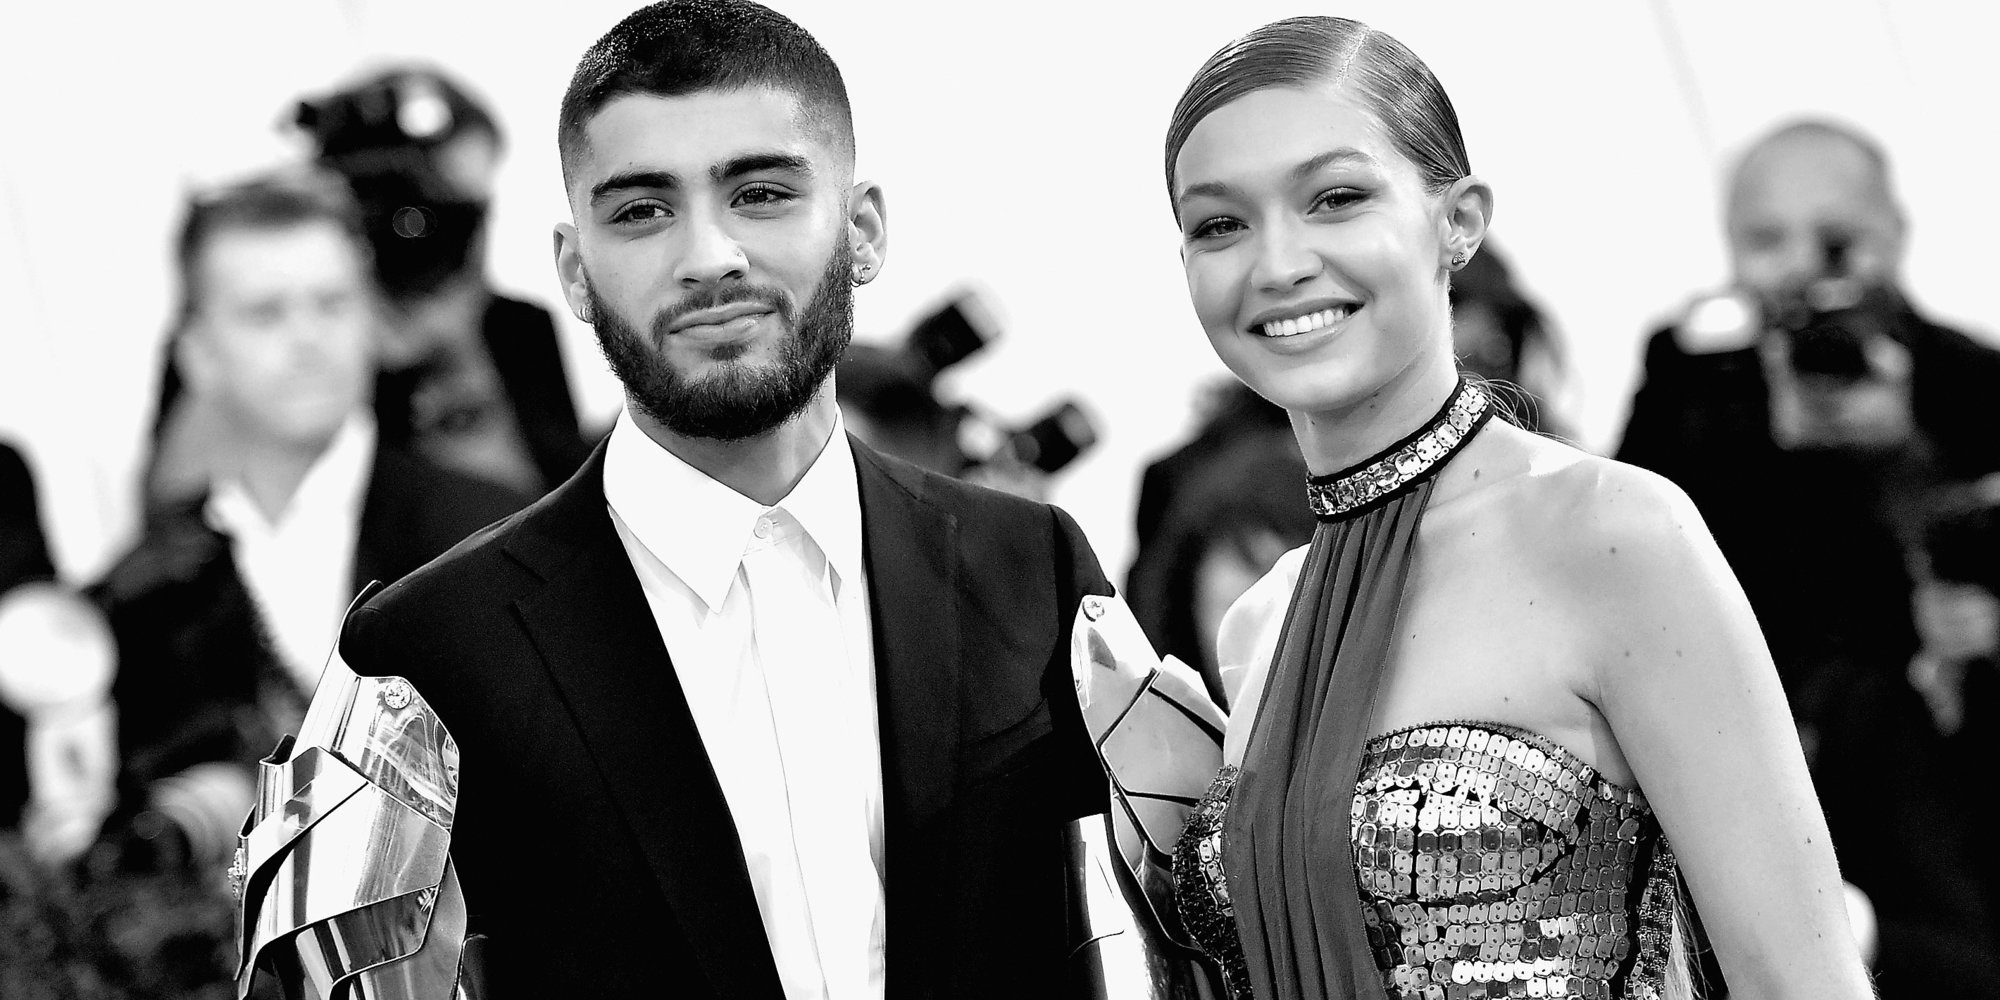 Gigi Hadid\s birthday message to Zayn Malik is giving us all the feels